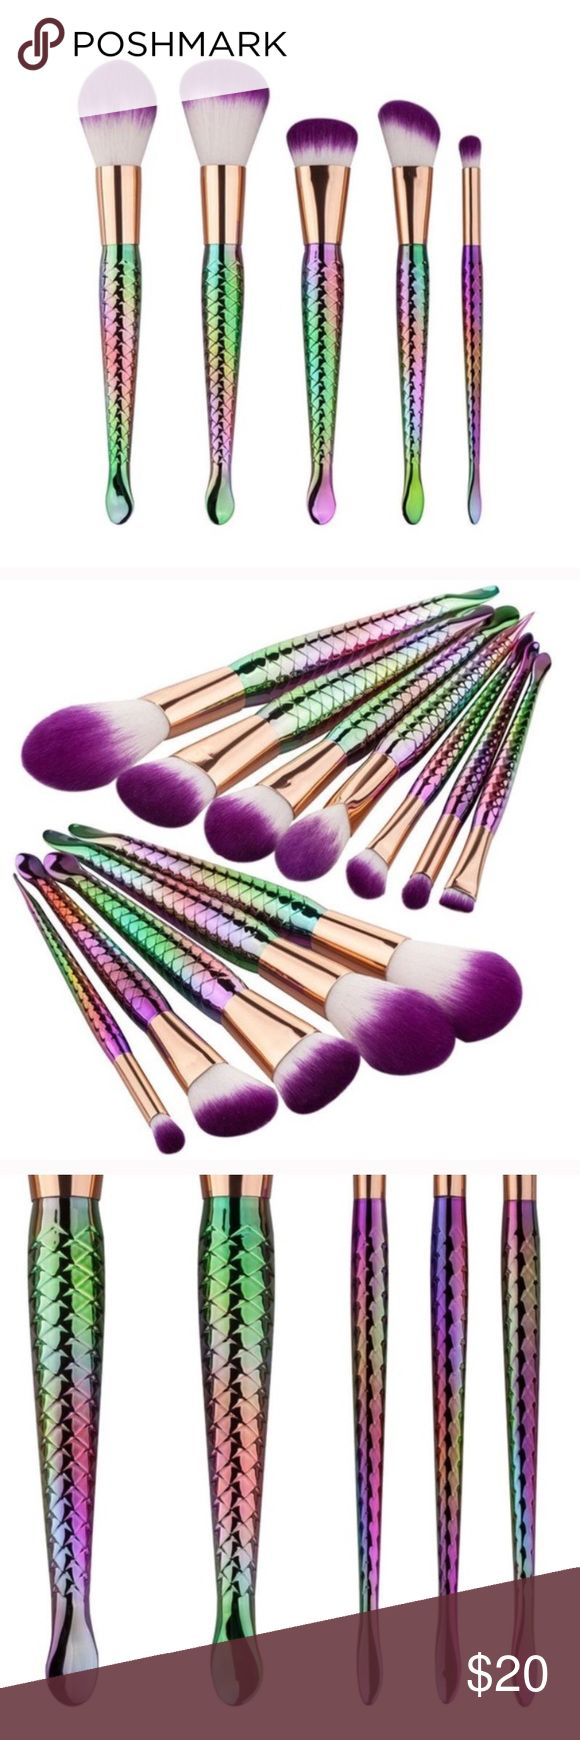 🐬Mermaid Makeup Brushes✨ Embrace your inner mermaid with these five unique stylish makeup brushes! Complete with shiny rainbow scaled tails with cute little ends and purple tipped hair, these brushes are sure to be the perfect mystical touch to any girl's makeup collection ✨🐠   Tags: follow game share group gothic boho Kylie Jenner yeezy supreme Makeup Brushes & Tools